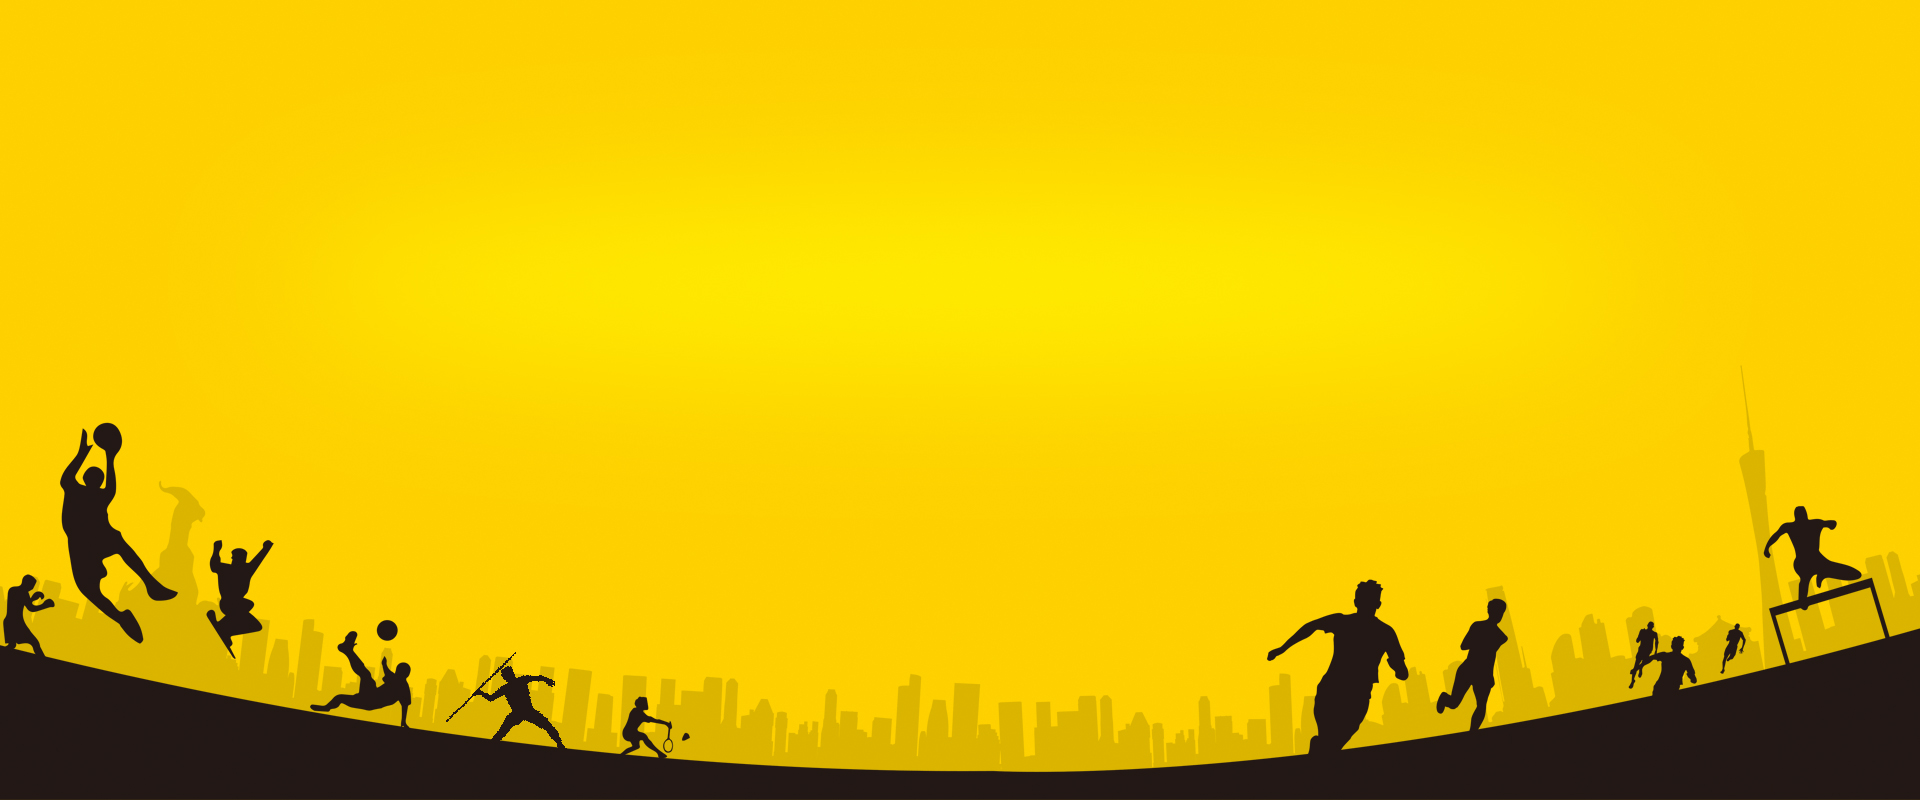 sports silhouette yellow background  yellow  silhouette